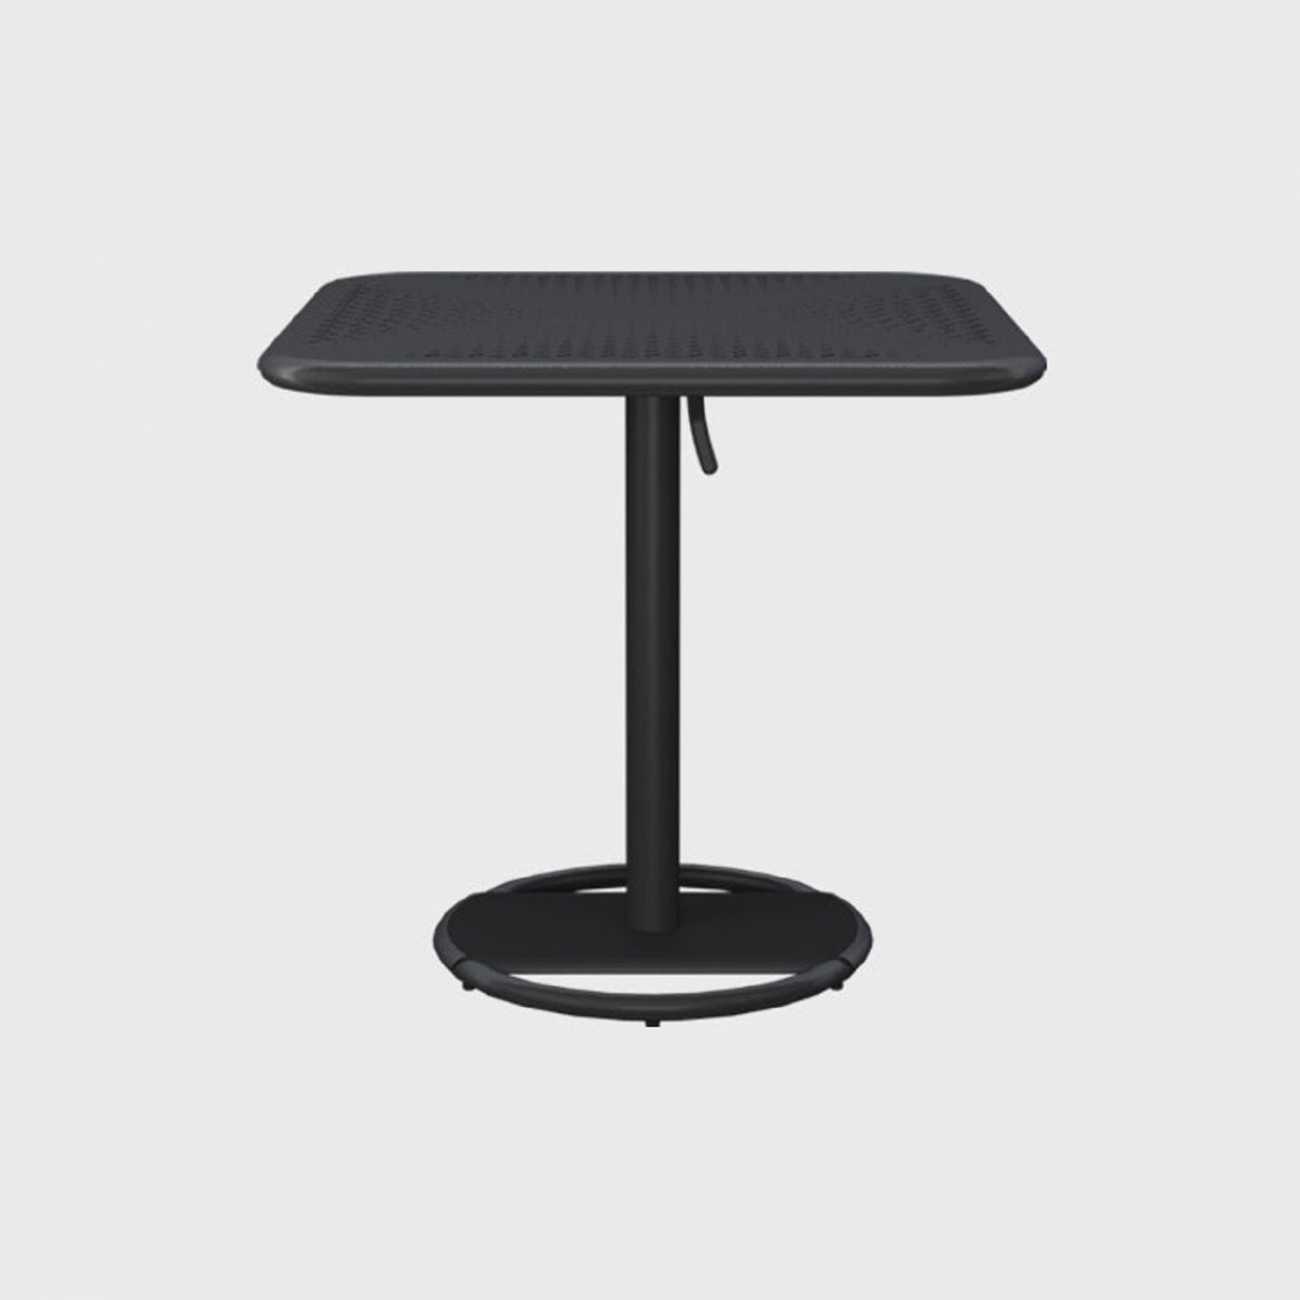 Maiori kose square bistro table charcoal tattahome maiori kose square bistro table charcoal watchthetrailerfo